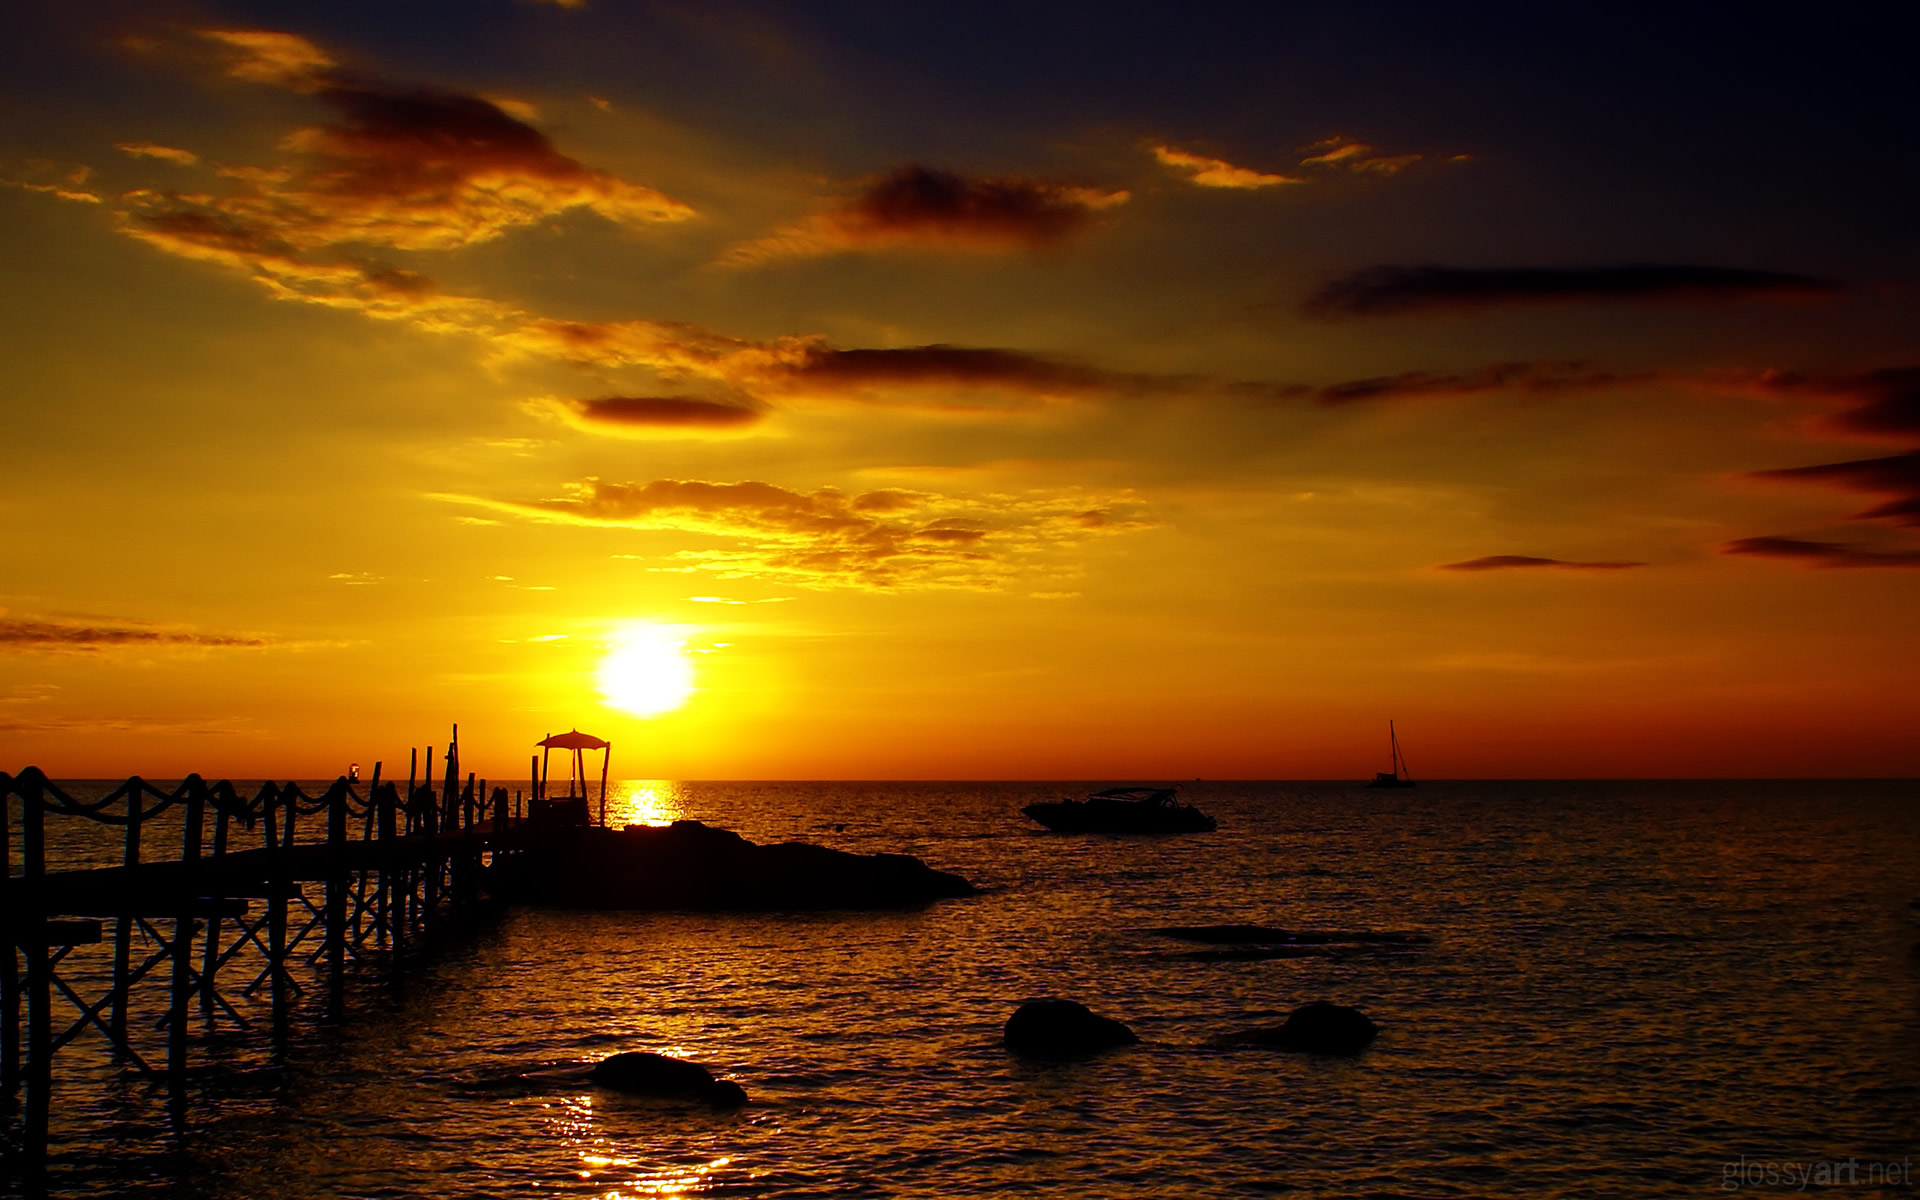 Theme Bin187 Blog Archive 187 Golden Sunset HD Wallpaper 1920x1200